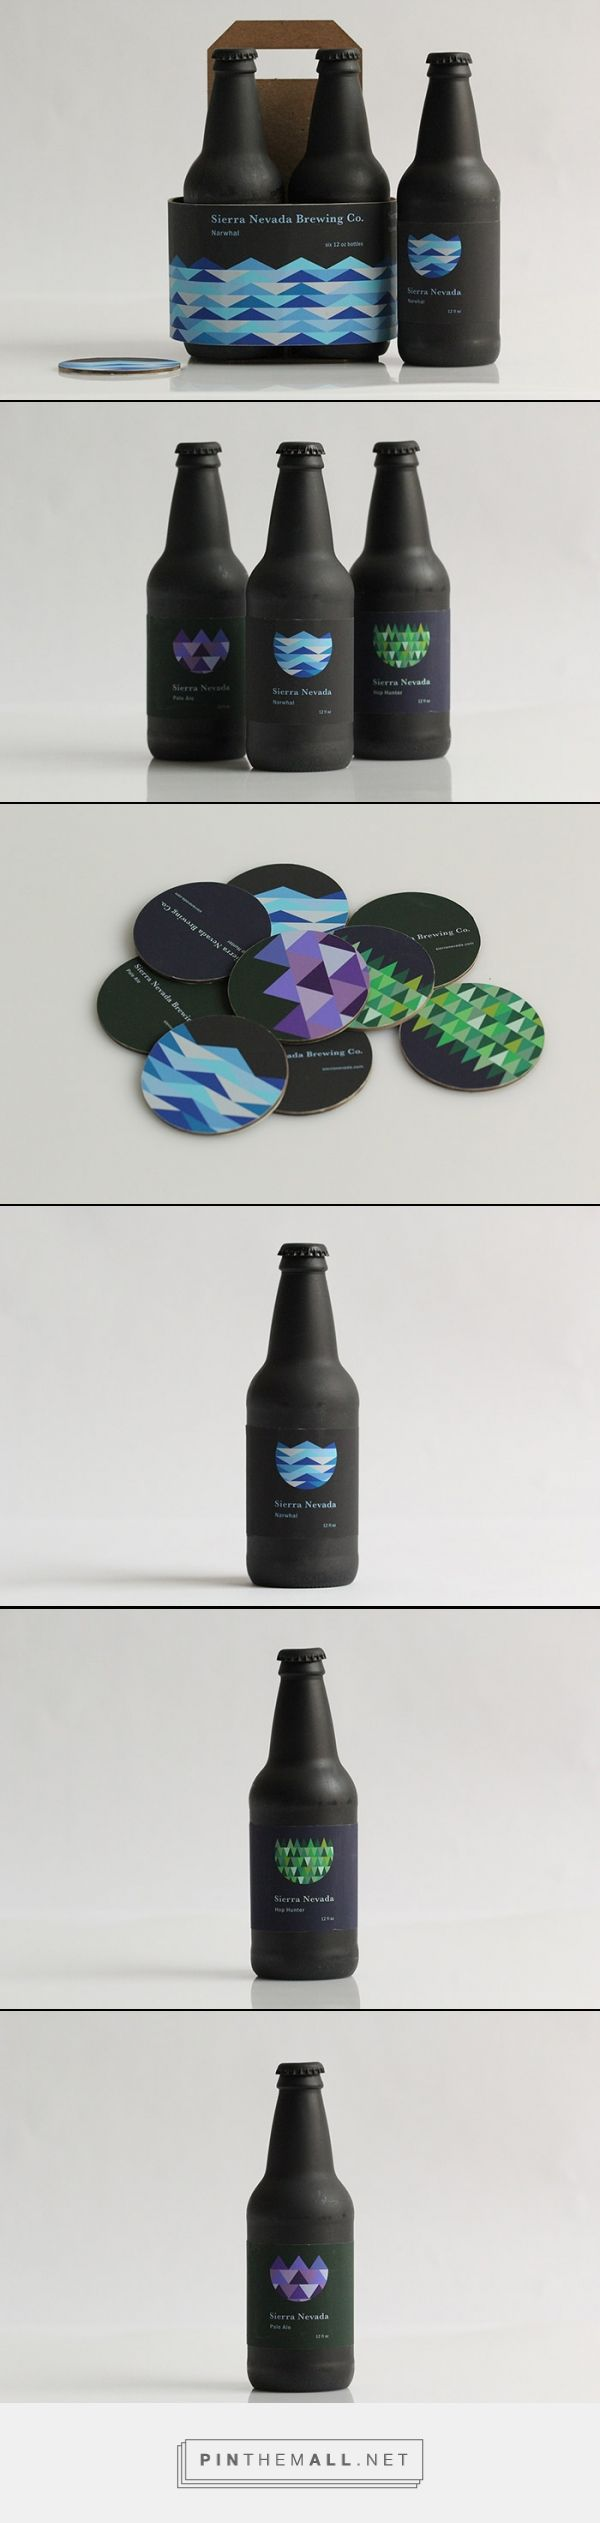 Sierra Nevada Rebrand - Daily Package Design InspirationDaily Package Design Inspiration